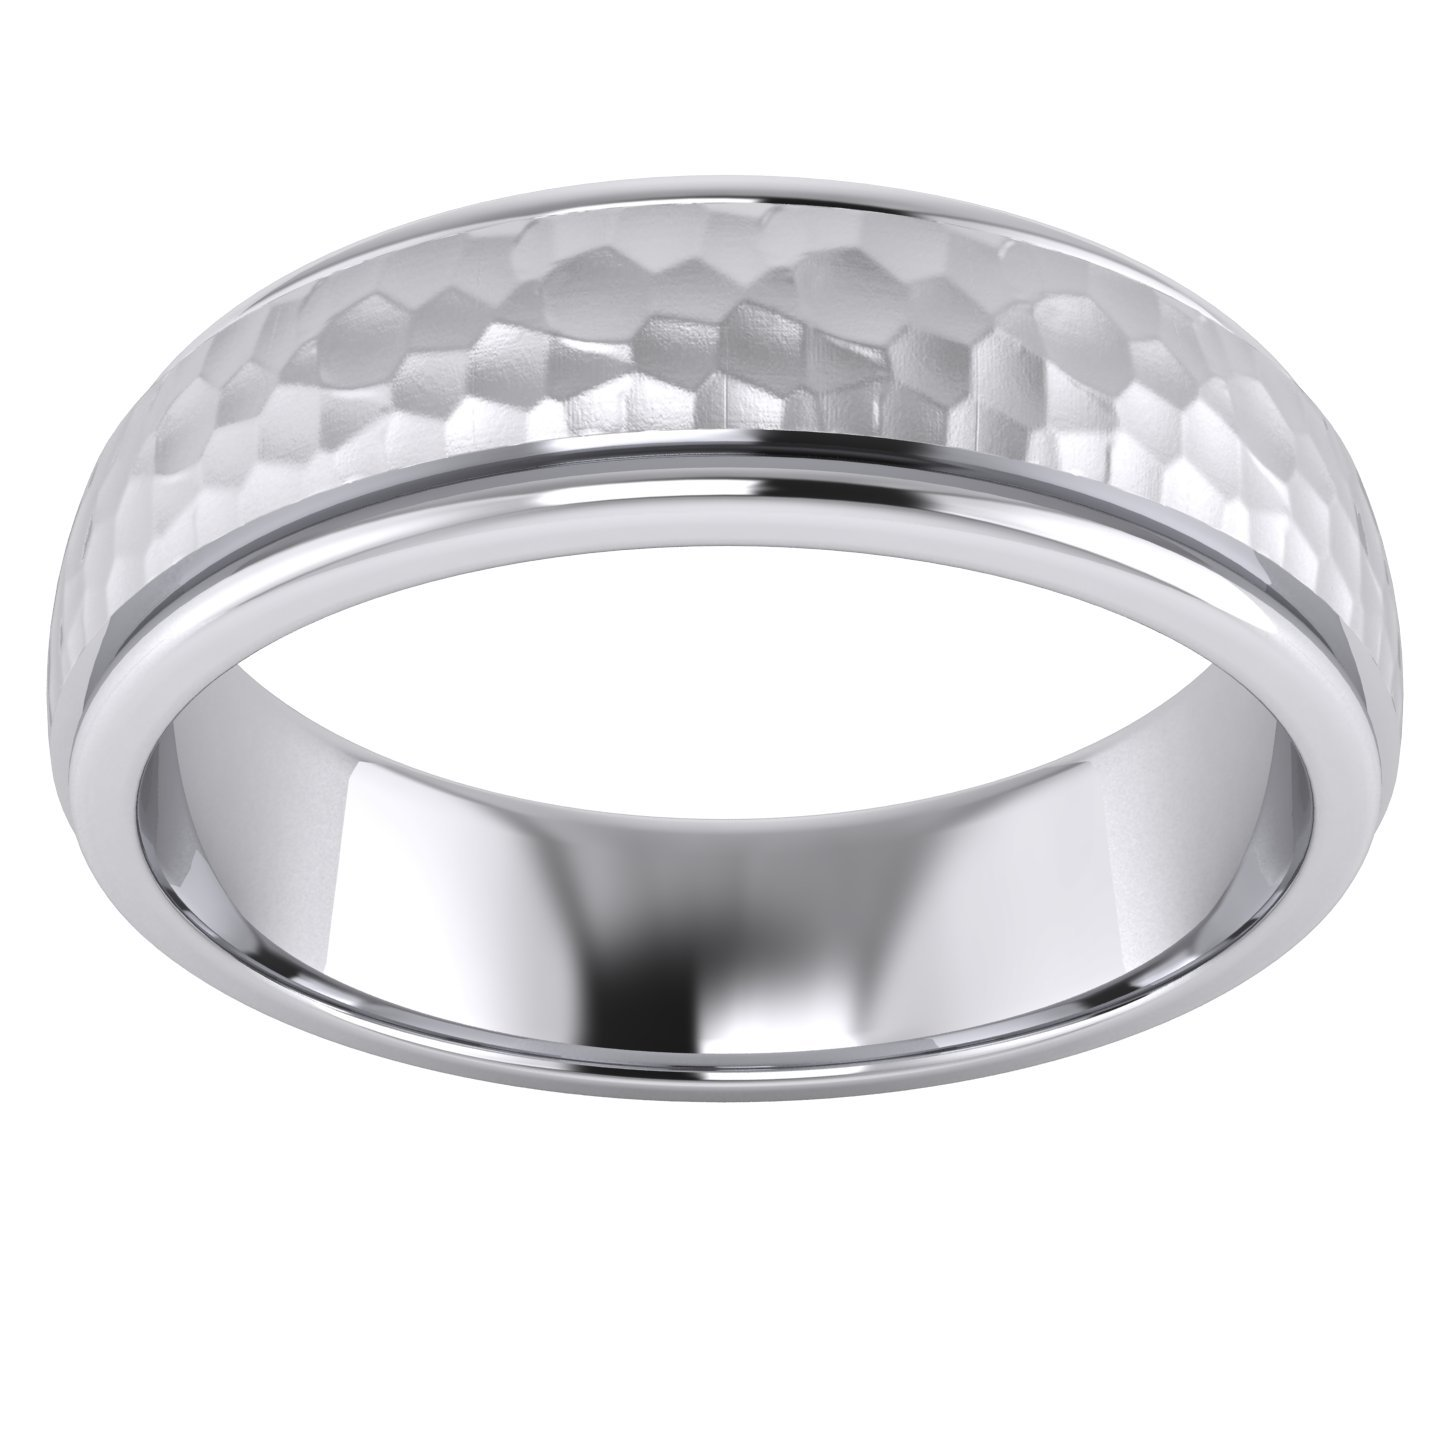 65746c09c4b3 Heavy Solid Sterling Silver 6MM and 8MM Hammered Unisex Wedding Band  Comfort Fit Ring Raised Center Polished Sides  Amazon.co.uk  Jewellery